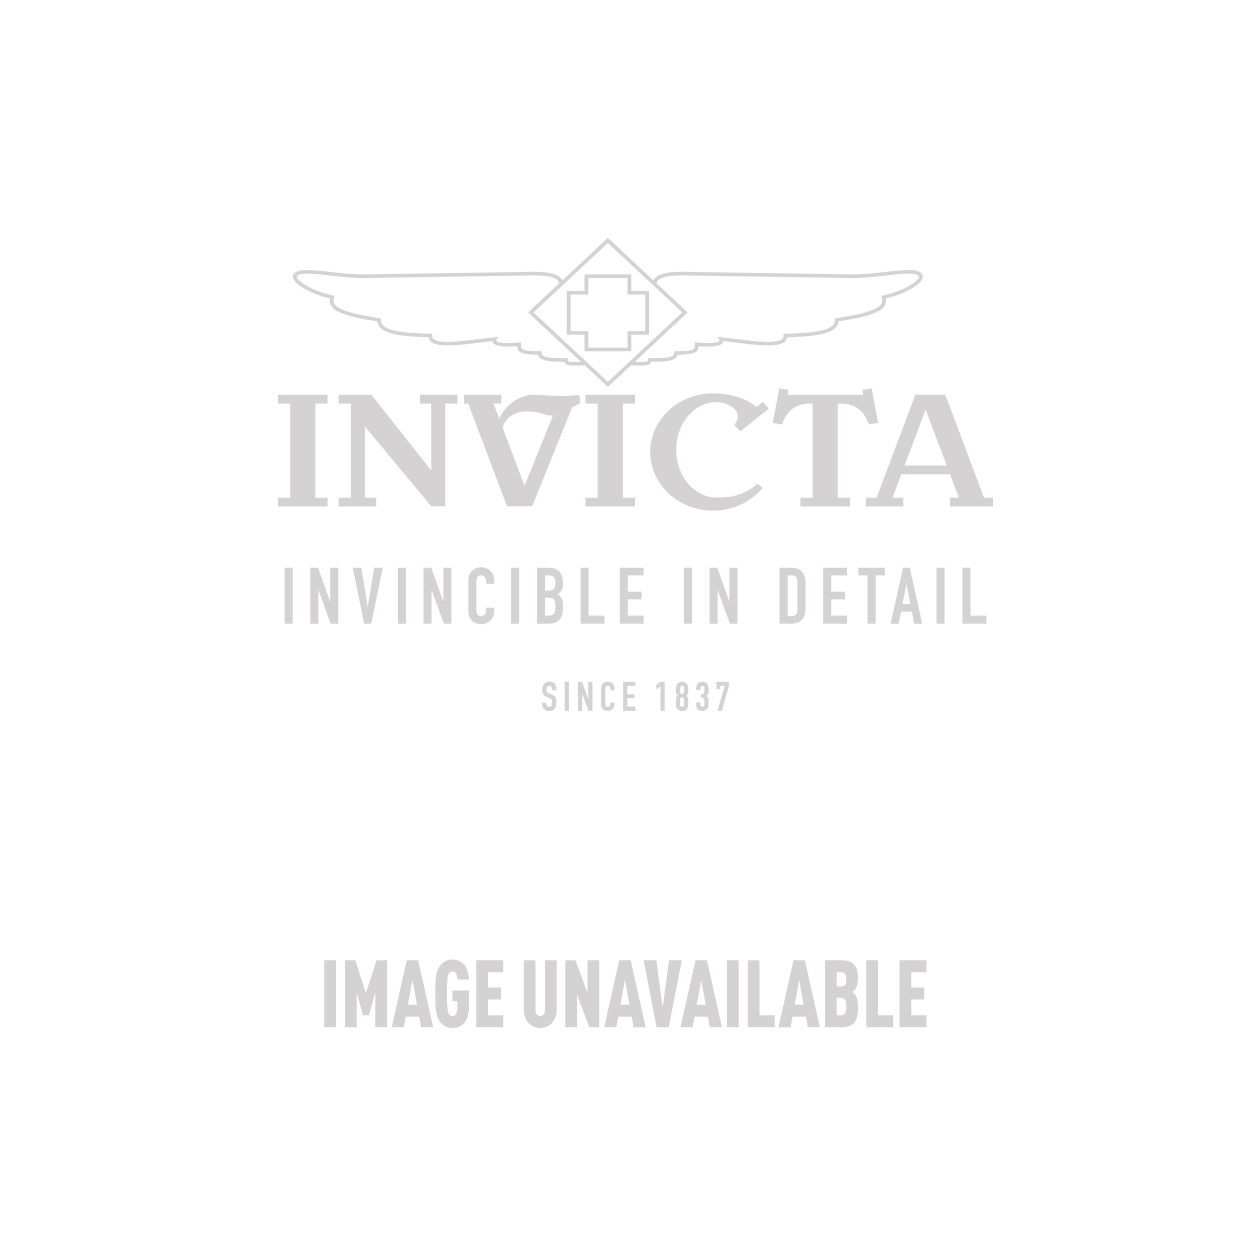 Invicta Reserve Swiss Made Quartz Watch - Gold case with Black tone Silicone band - Model 18947